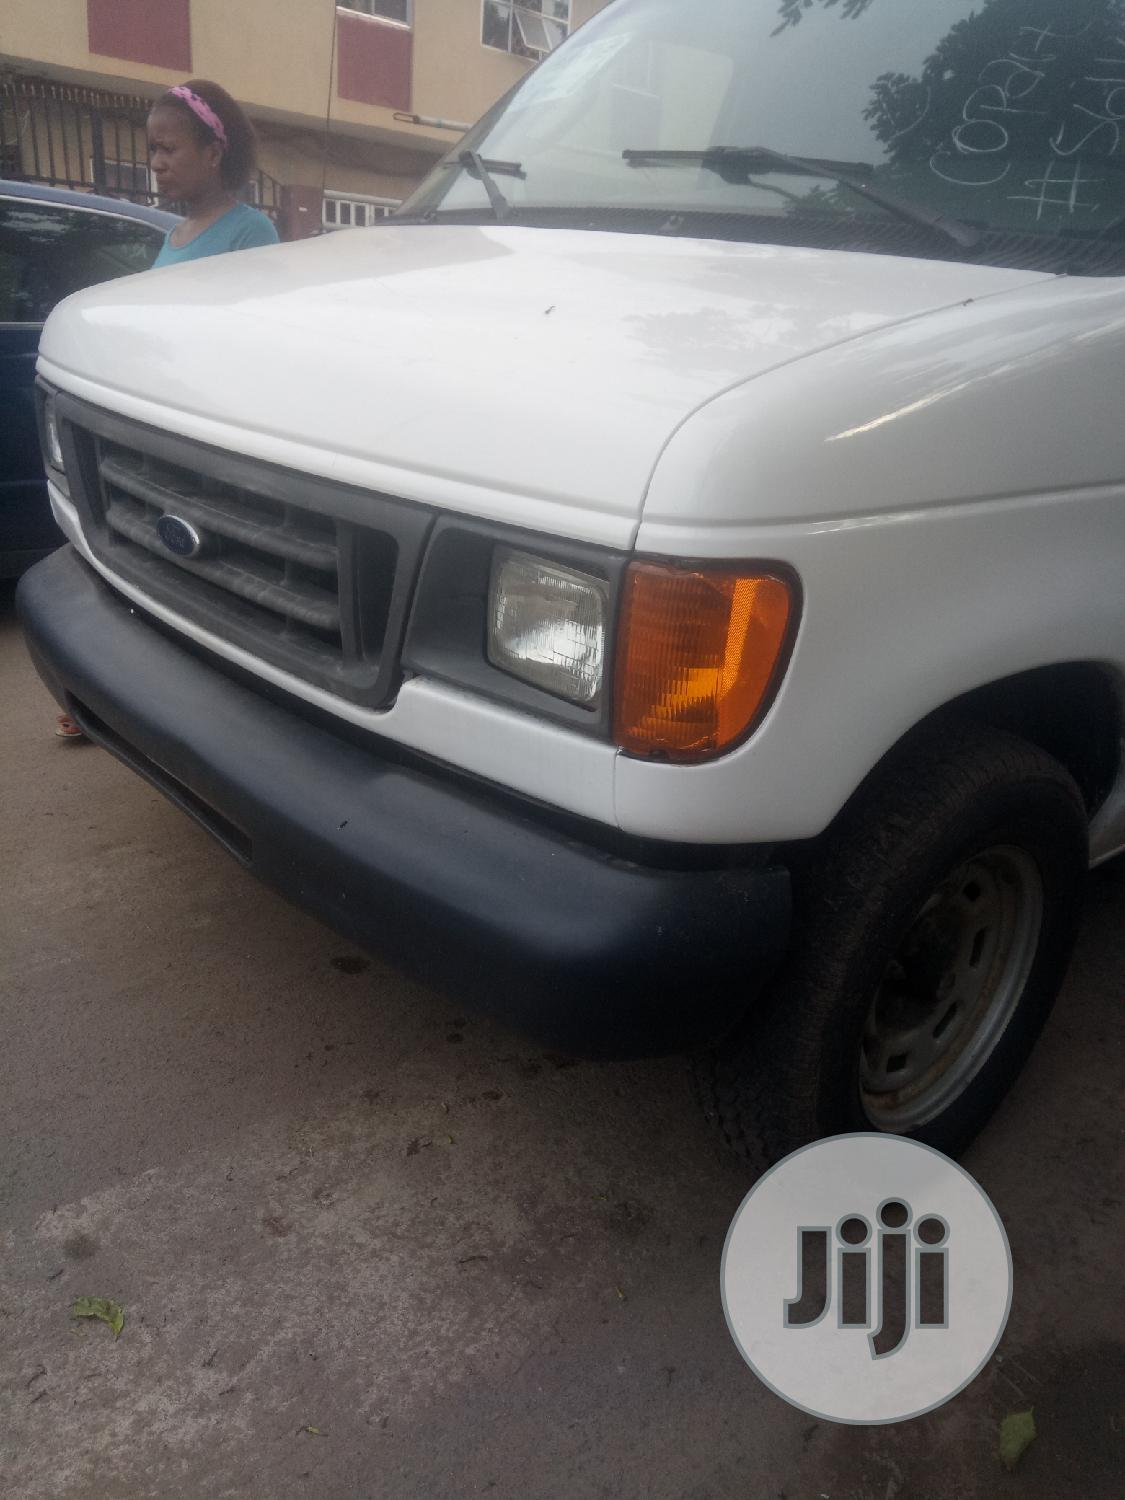 Archive: Ford E-150 2006 From Texas USA Just Buy and Drive